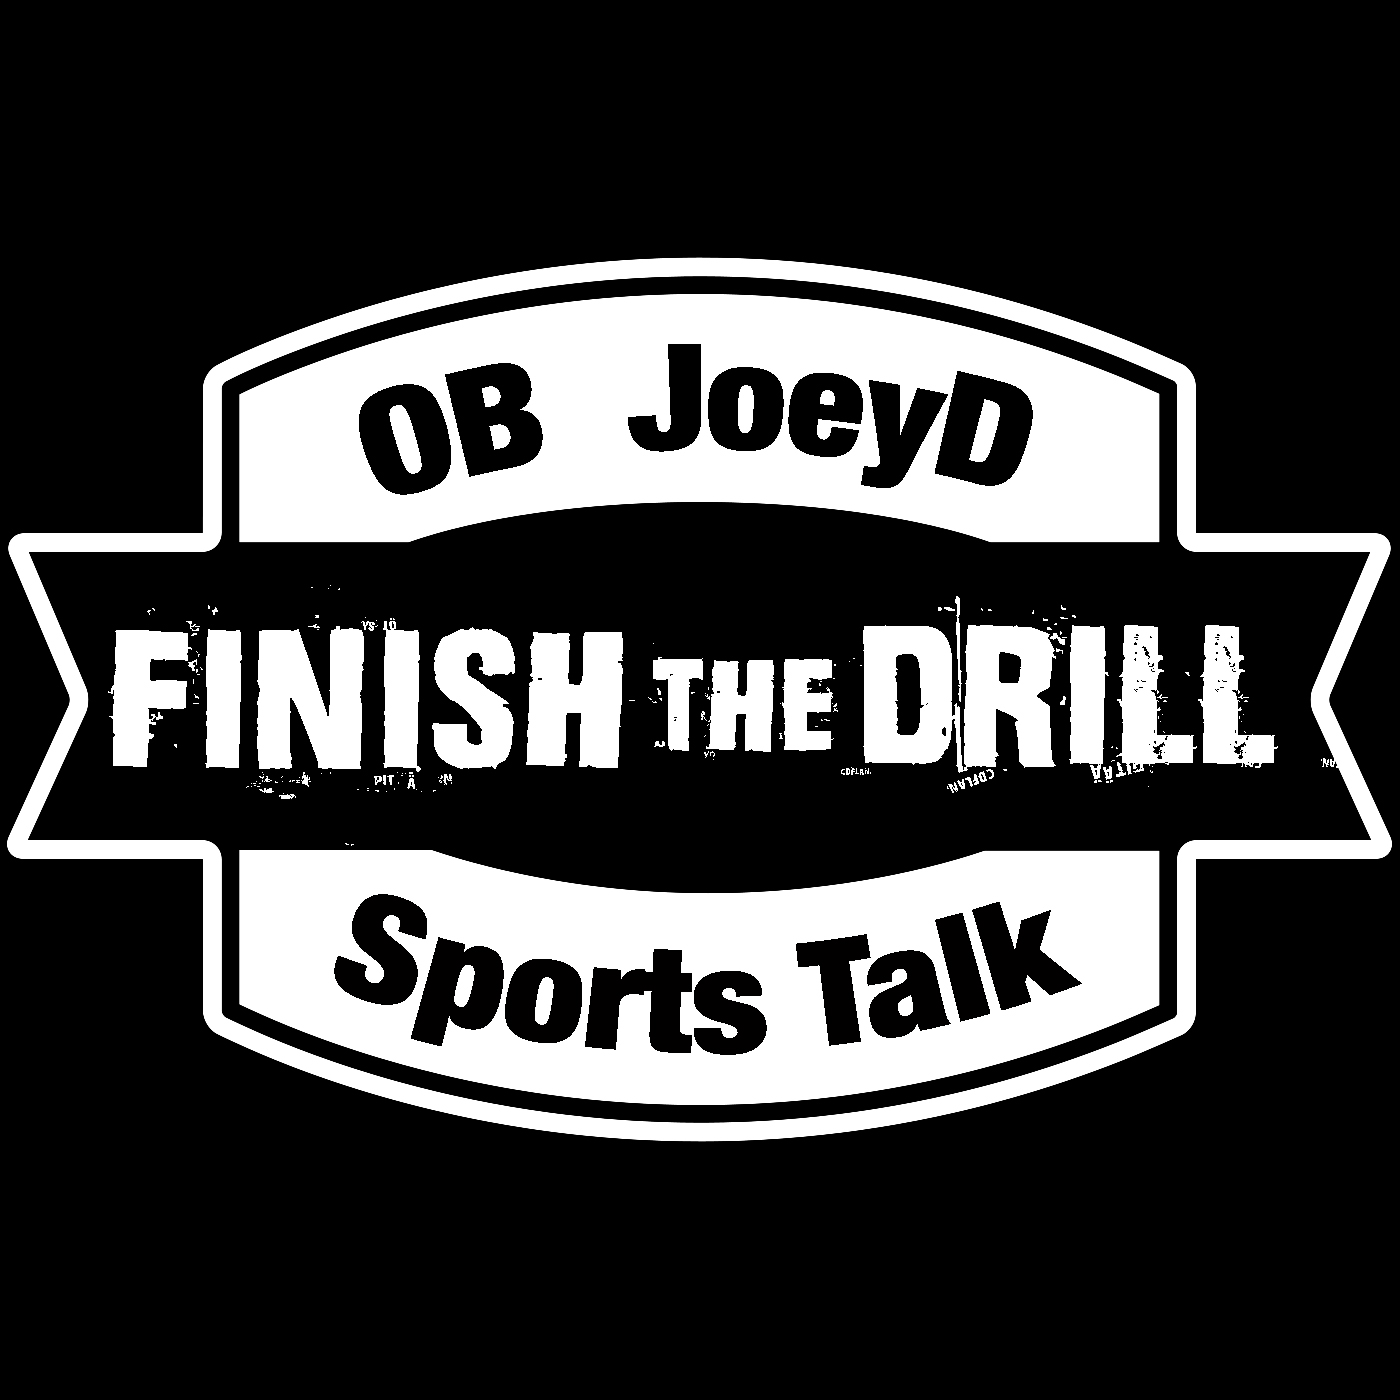 FINISH THE DRILL: Sports Talk with O.B. and Joey D